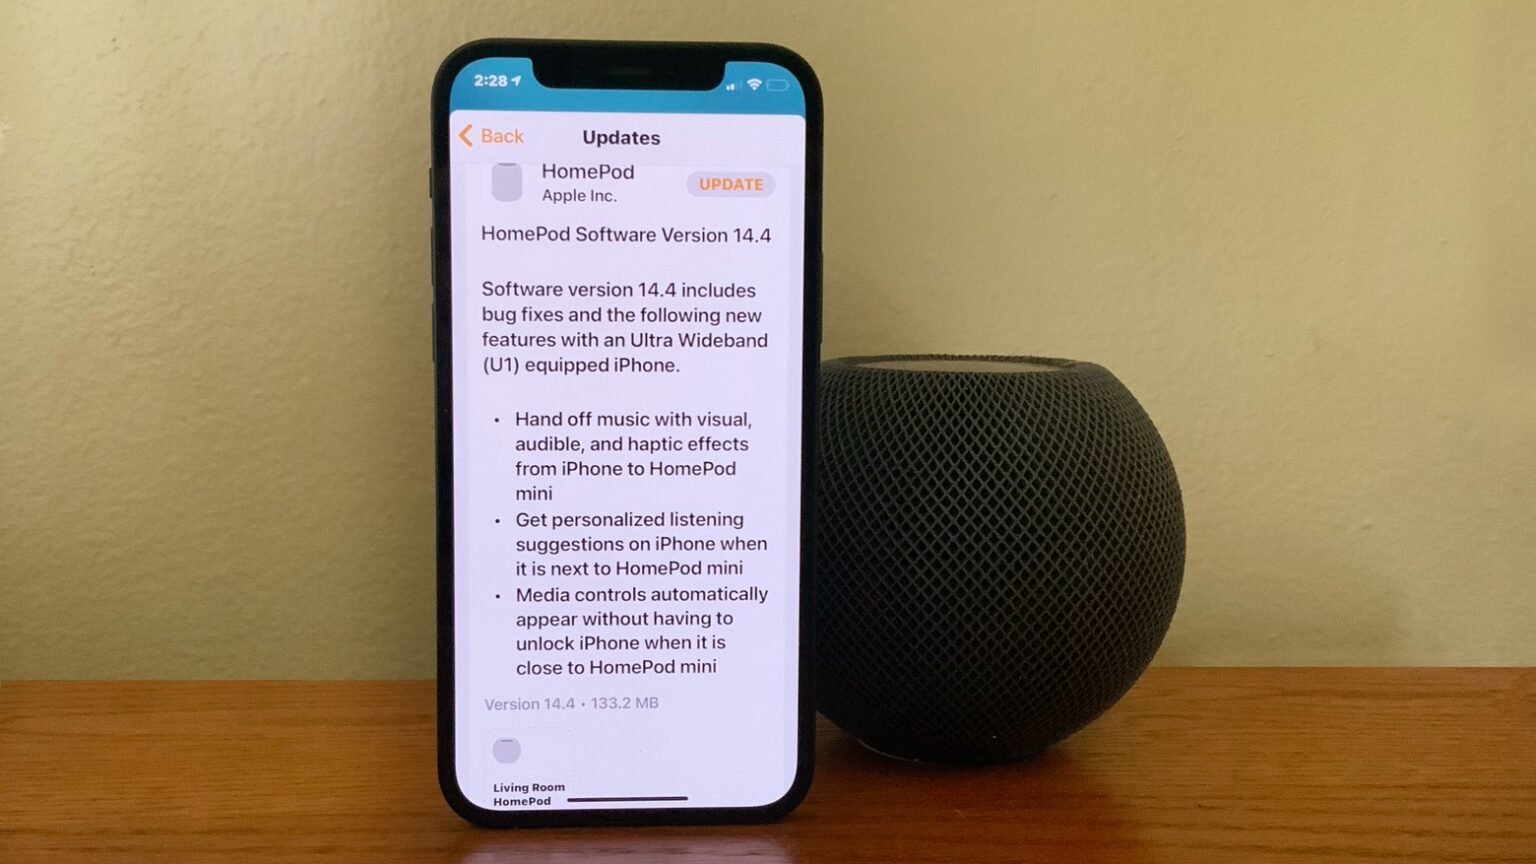 HomePod Software Version 14.4 debuted January 26.